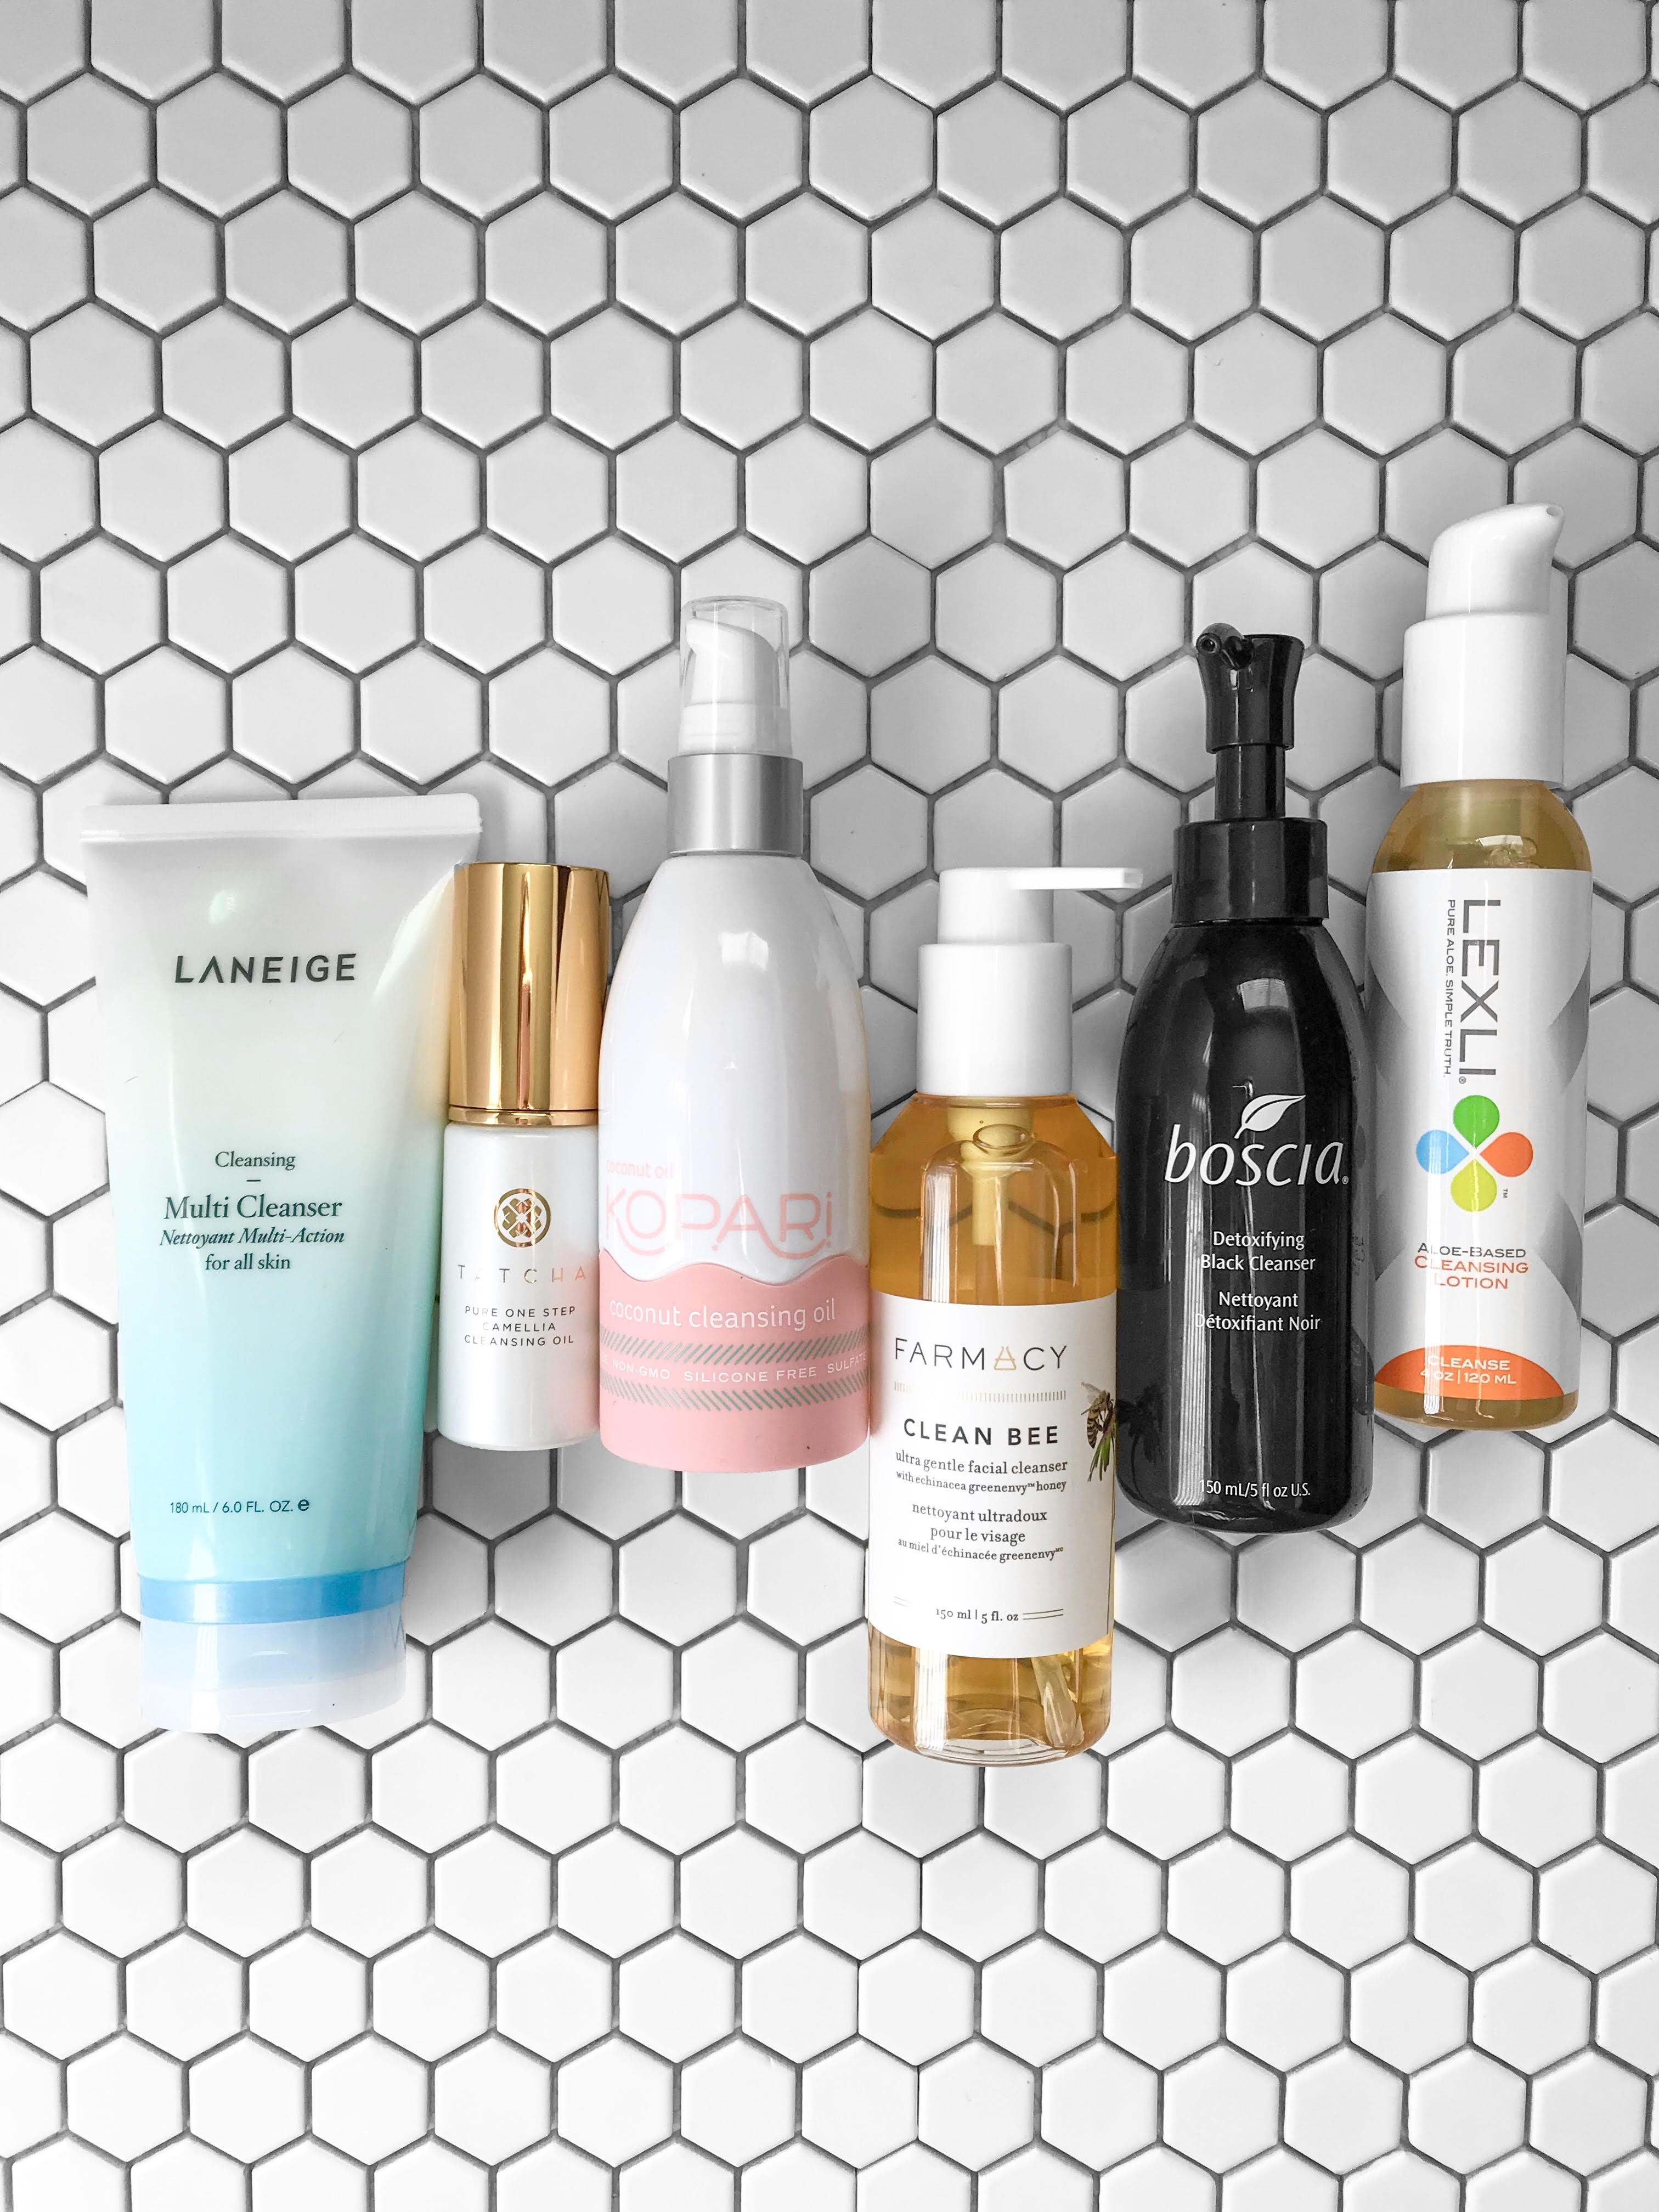 Face Cleansers I'm Currently Testing   She Sweats Diamonds - Laneige Multi Cleanser - Tatcha Camellia Cleansing Oil - Kopari Coconut Cleansing Oil - Farmacy Clean Bee Facial Cleanser